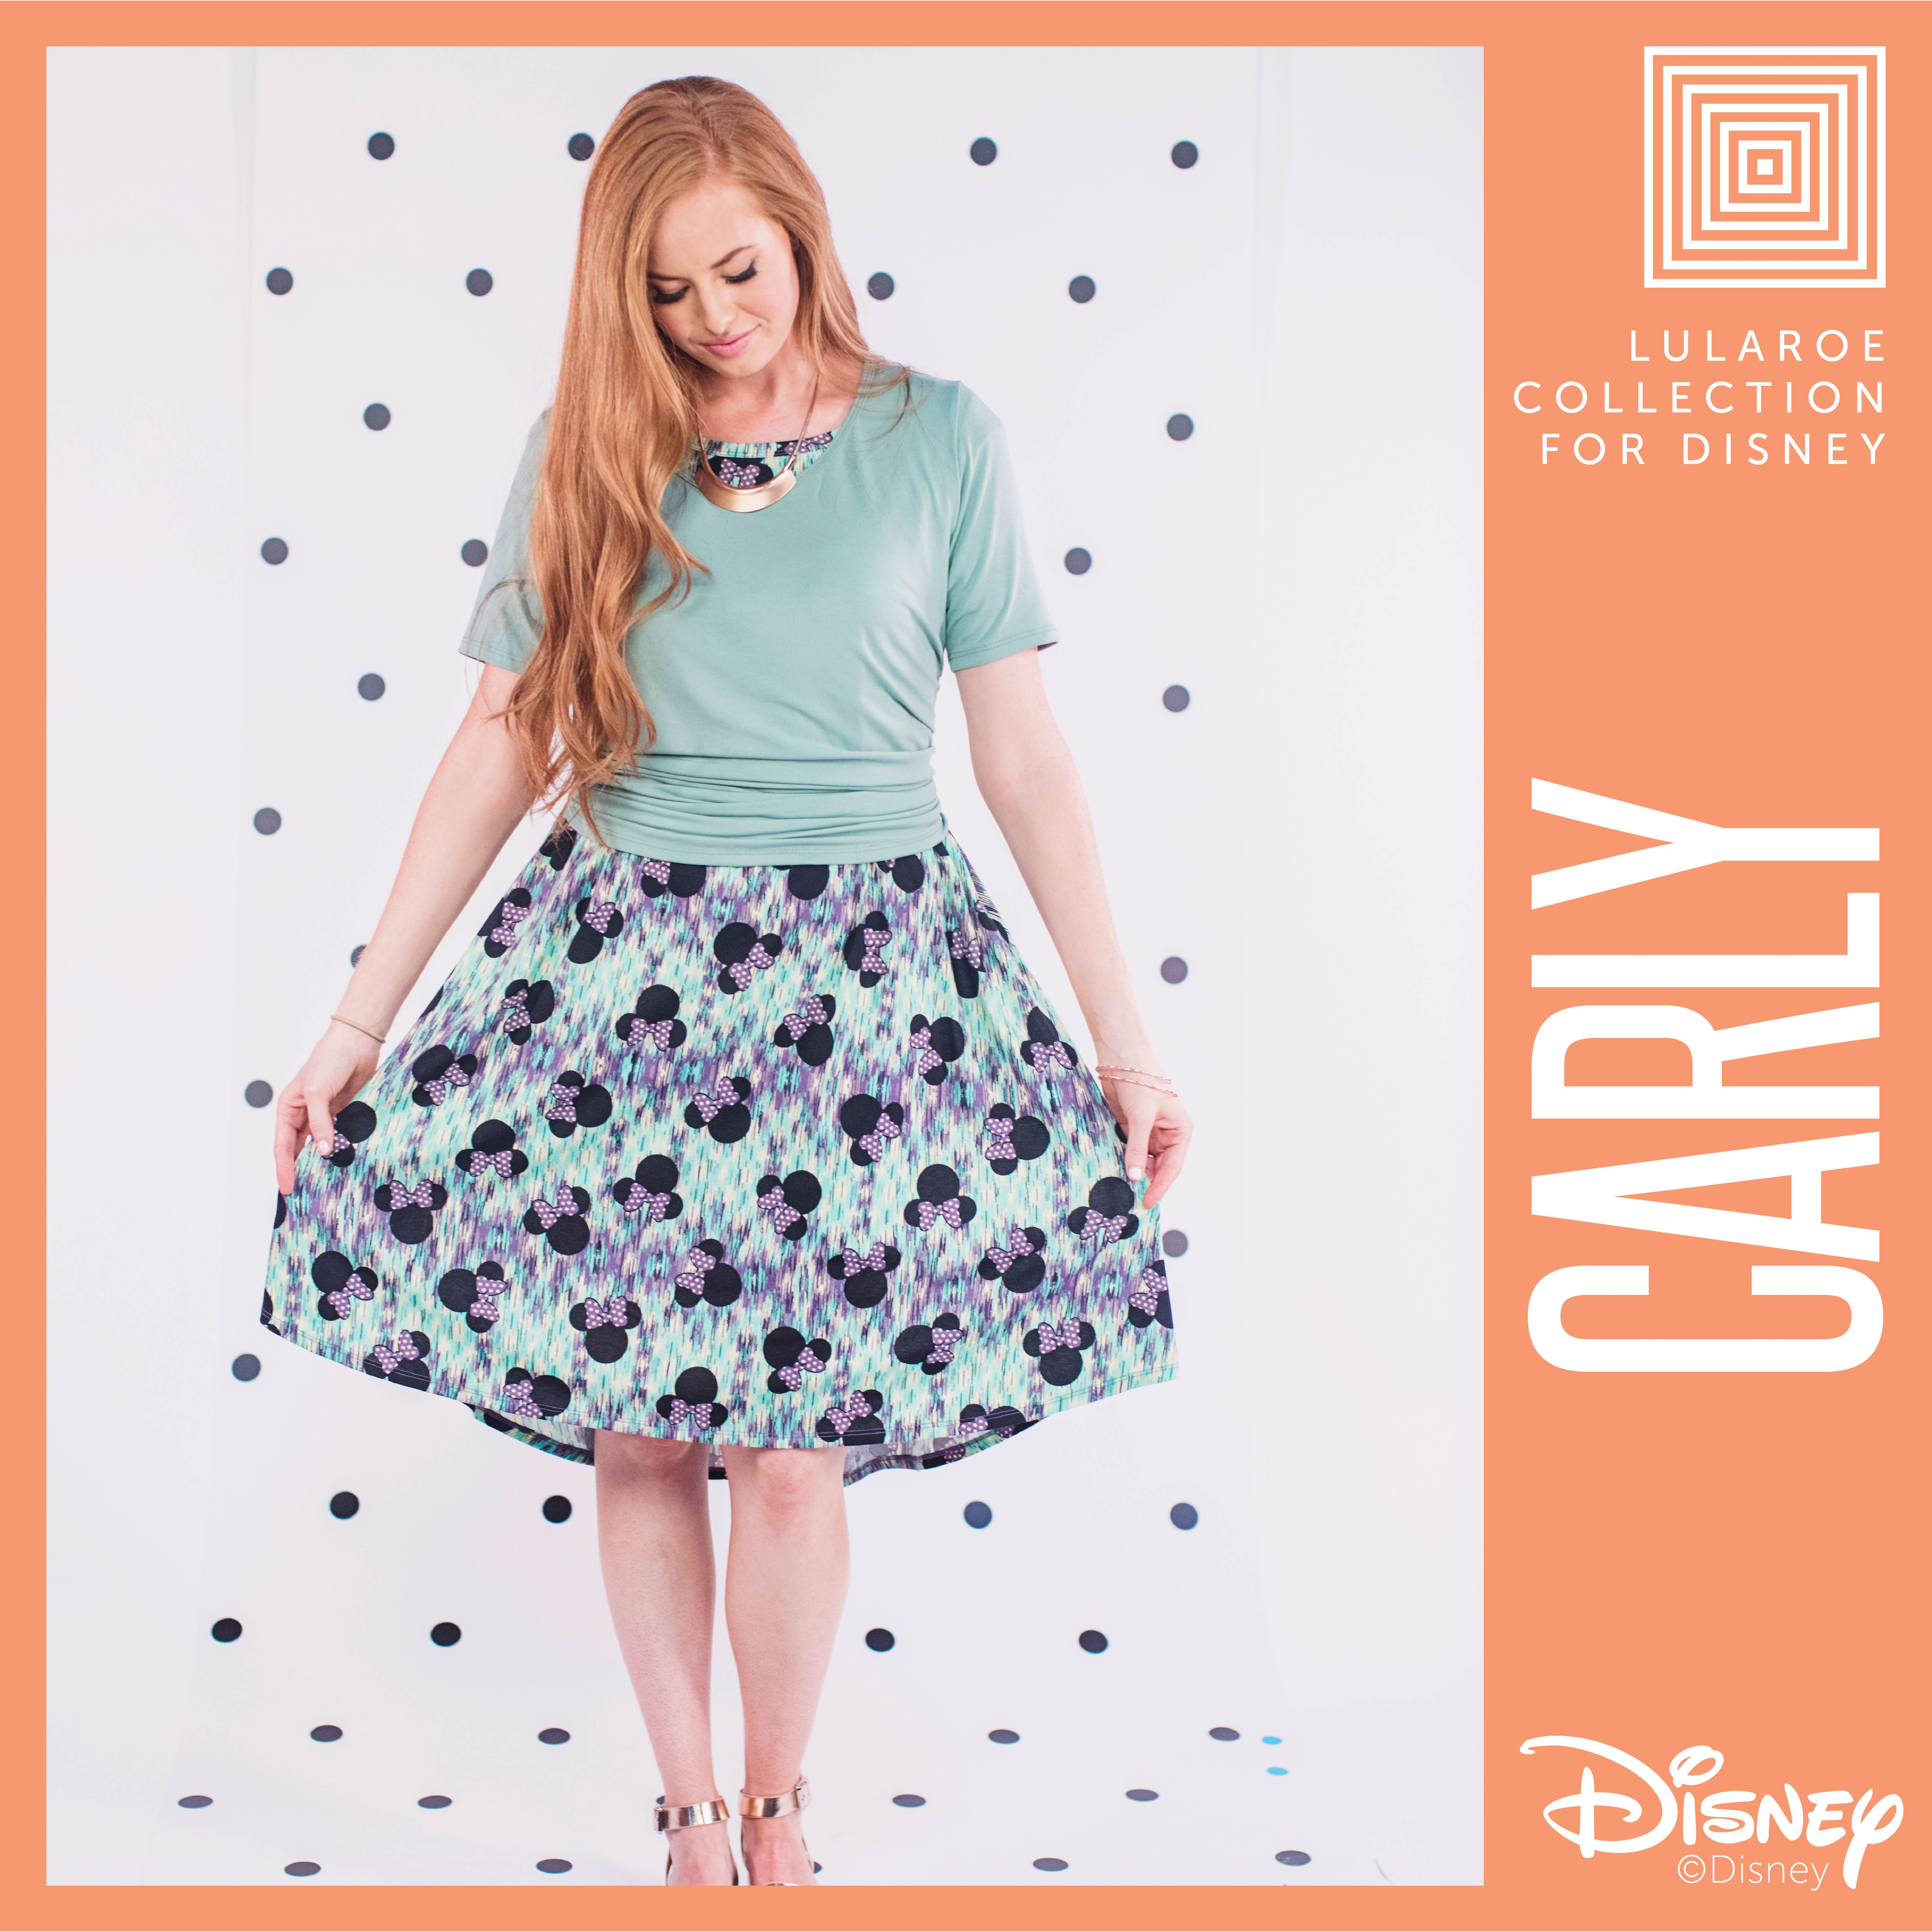 6357b83c541e57 LuLaRoe is launching a Collection with Disney, one of the world's most  creative and imaginative brands, that will see many of Disney's beloved  characters ...